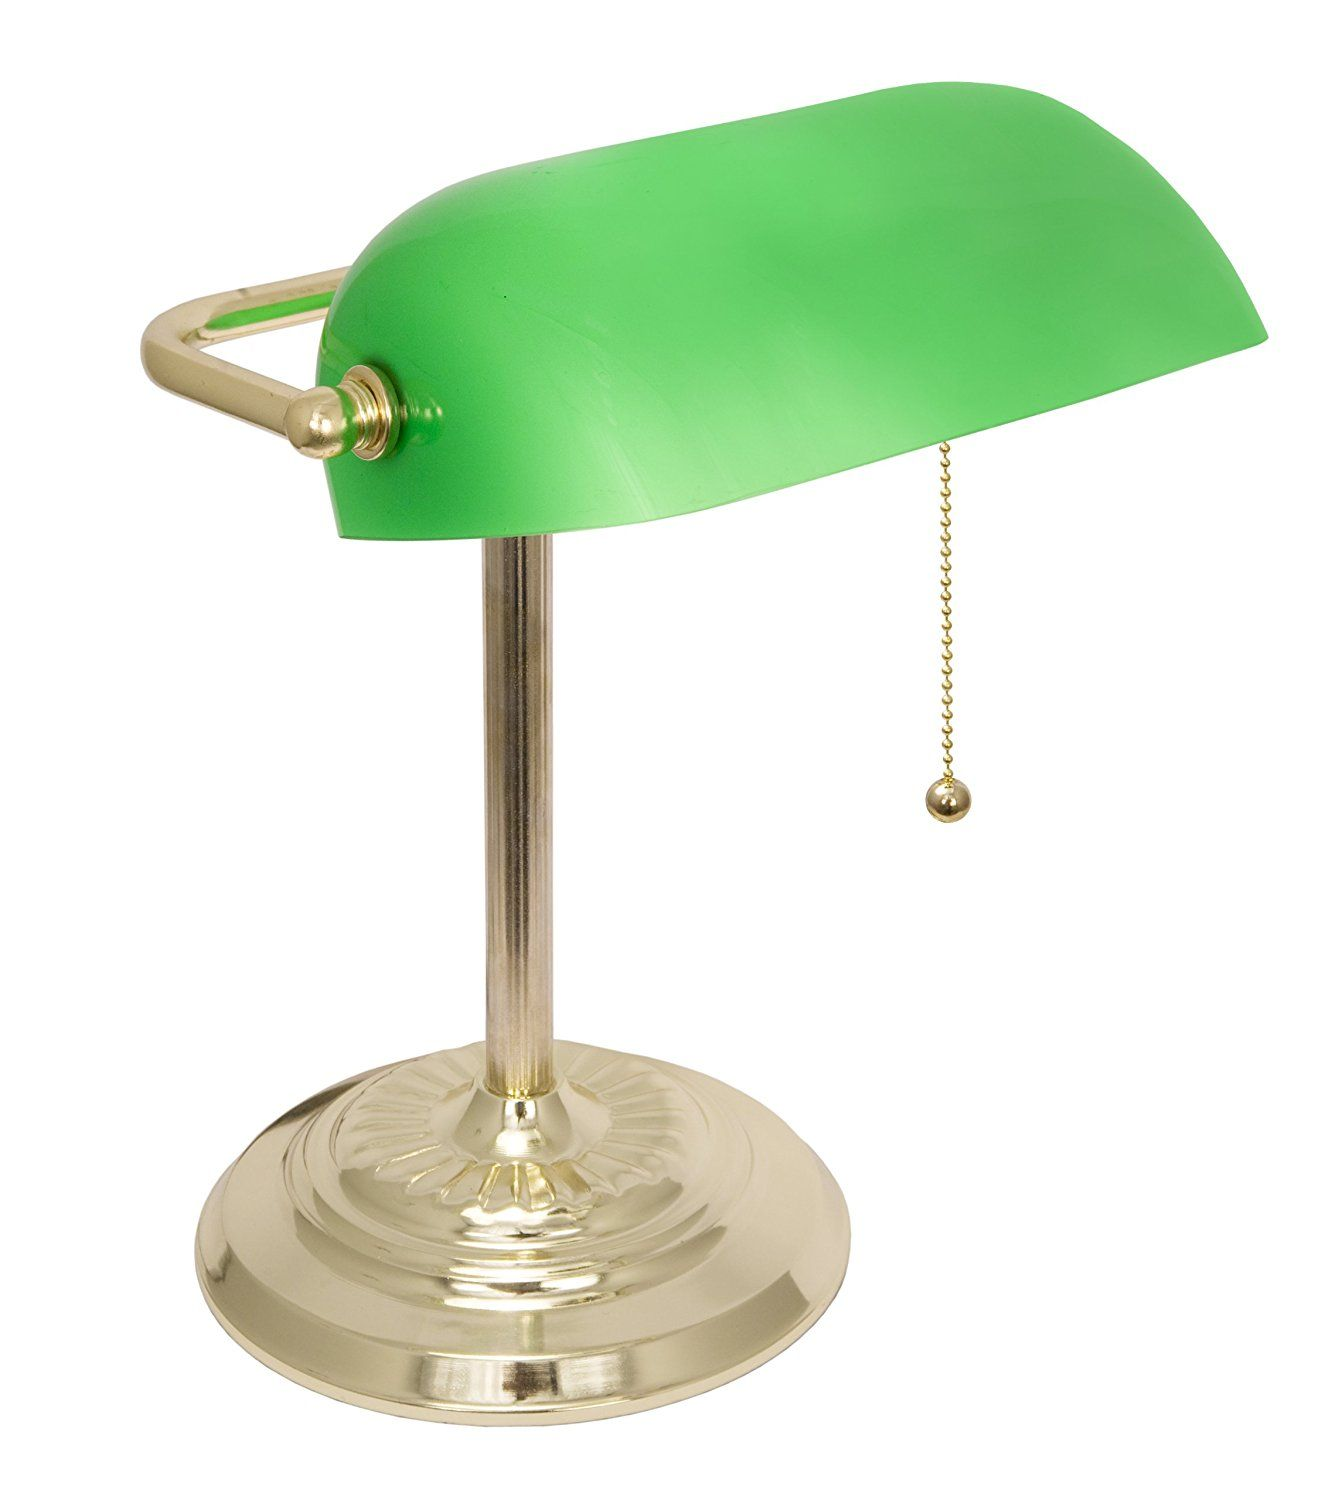 High Quality LightAccents Metal Bankers Desk Lamp   The Bankers Lamp